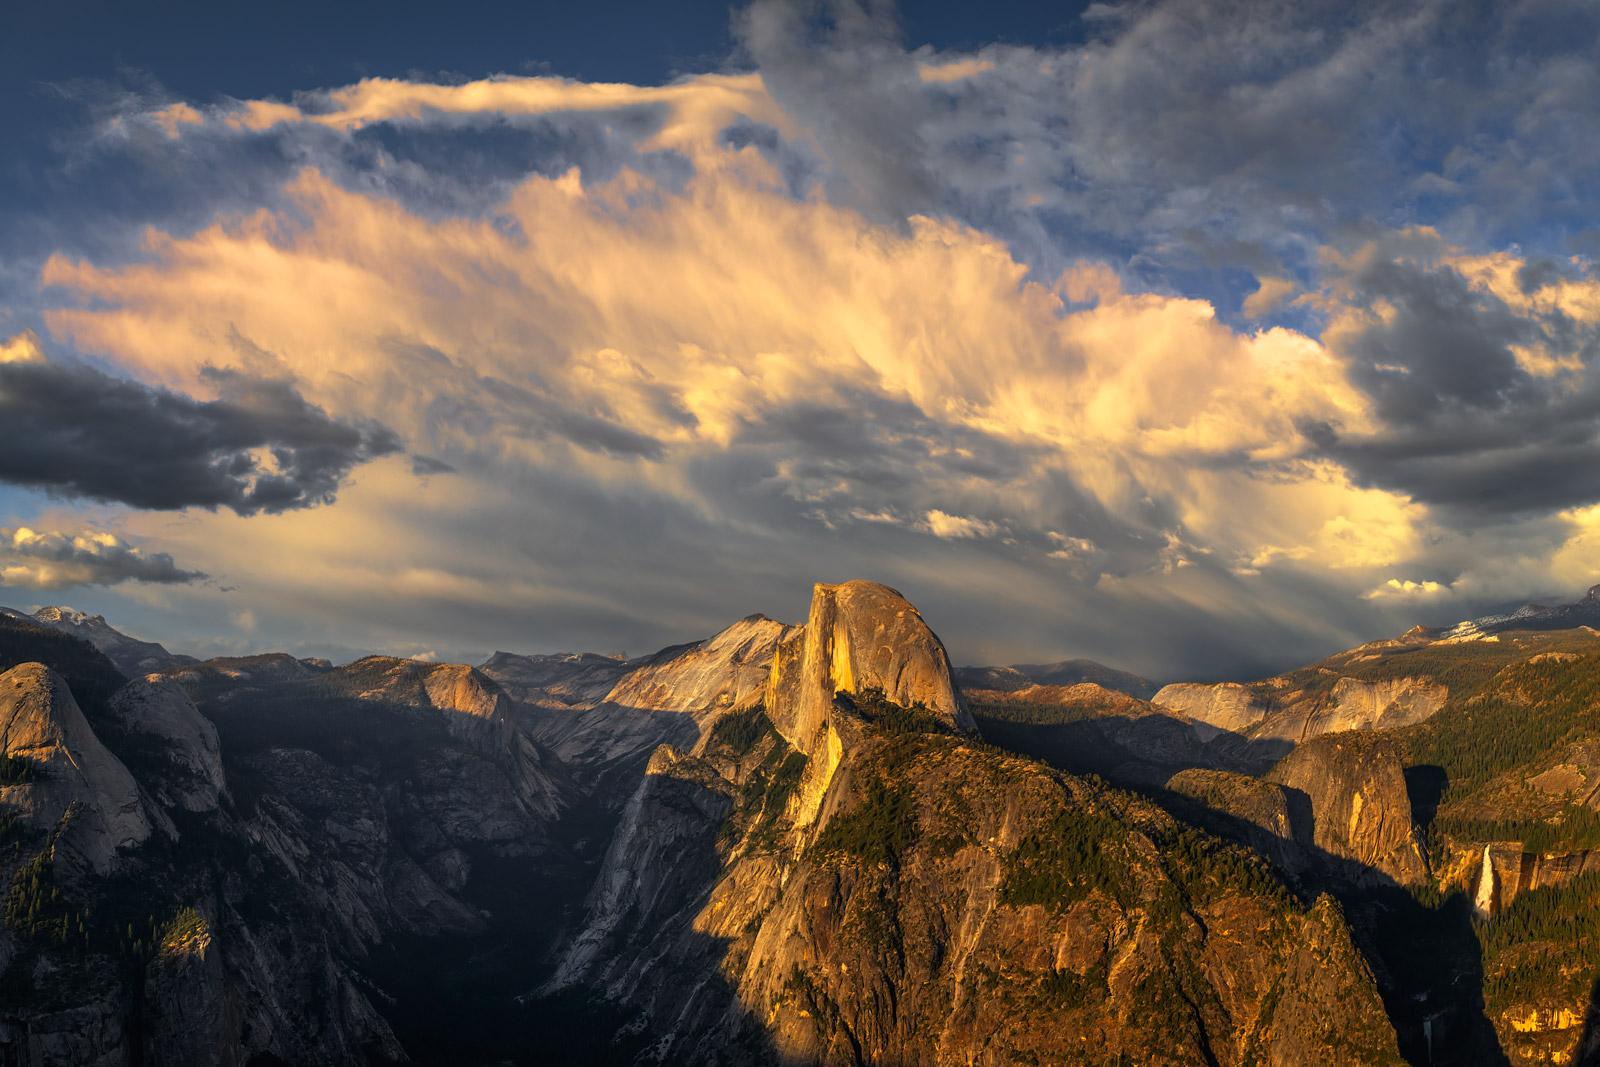 A Limited Edition, Fine Art photograph of Half Dome from Glacier Point at sunset at Yosemite National Park in California. Available...